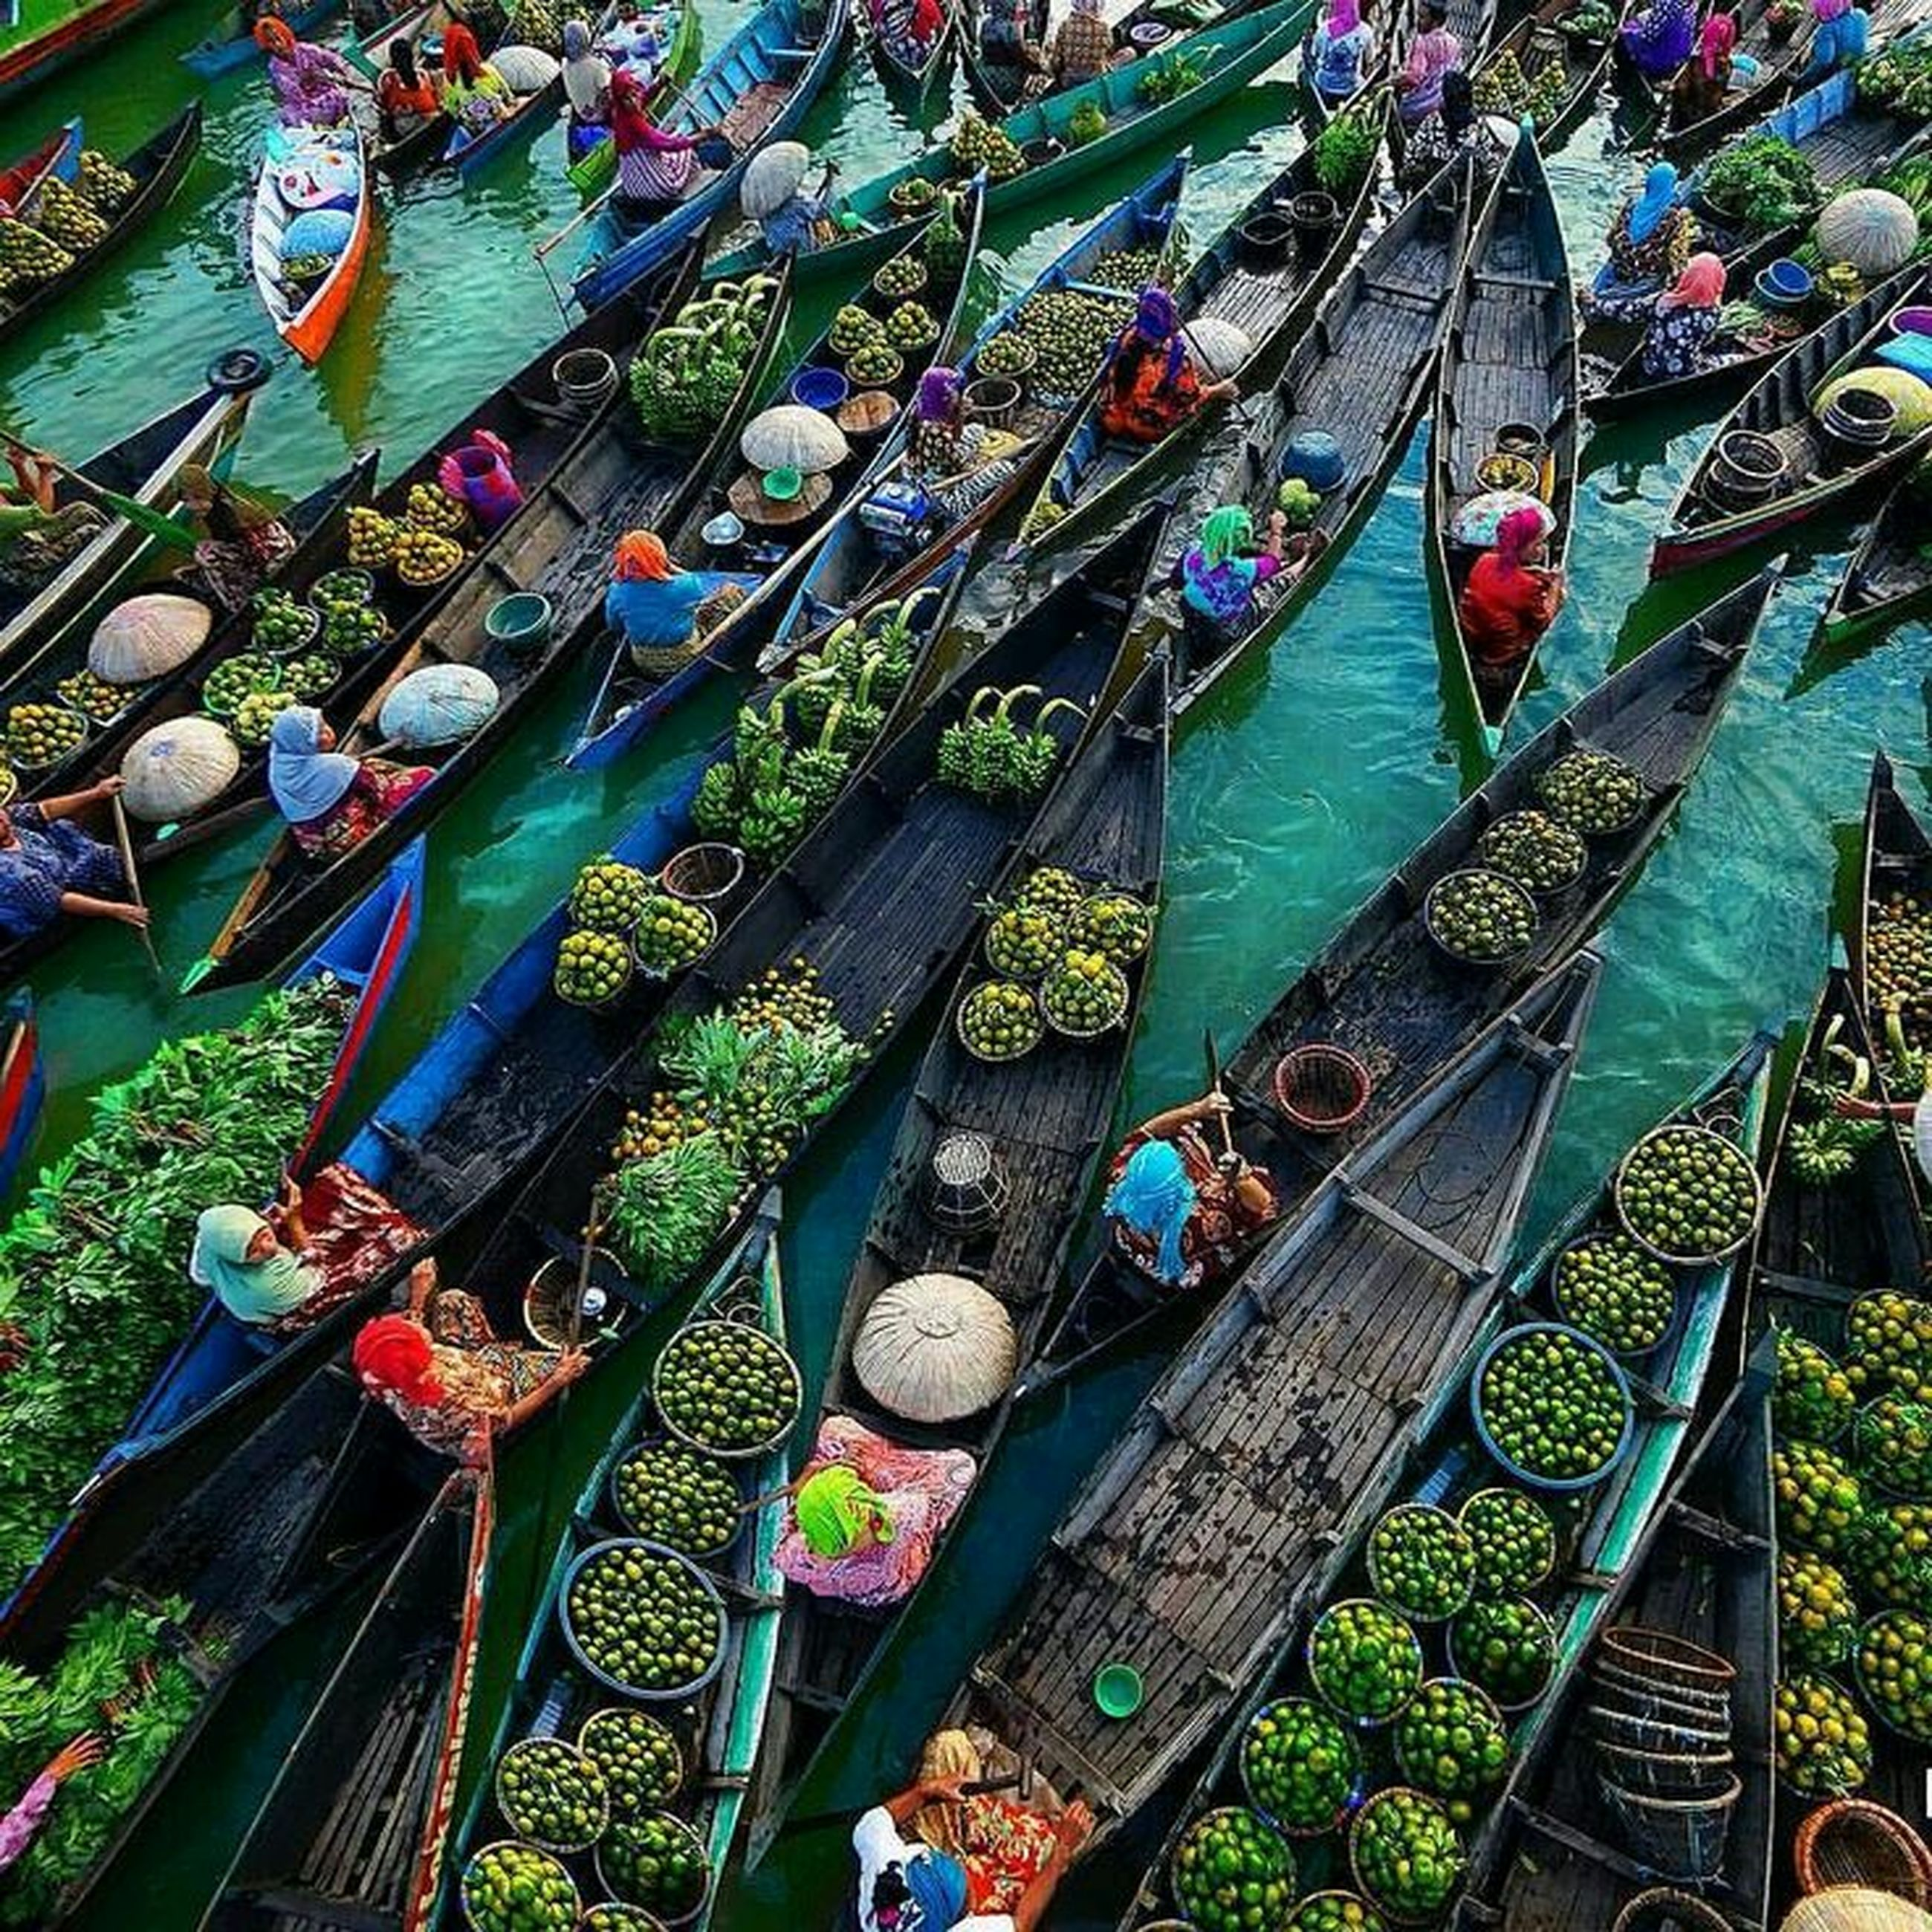 abundance, large group of objects, high angle view, for sale, market, variation, retail, choice, day, outdoors, market stall, in a row, sunlight, green color, arrangement, incidental people, hanging, nature, order